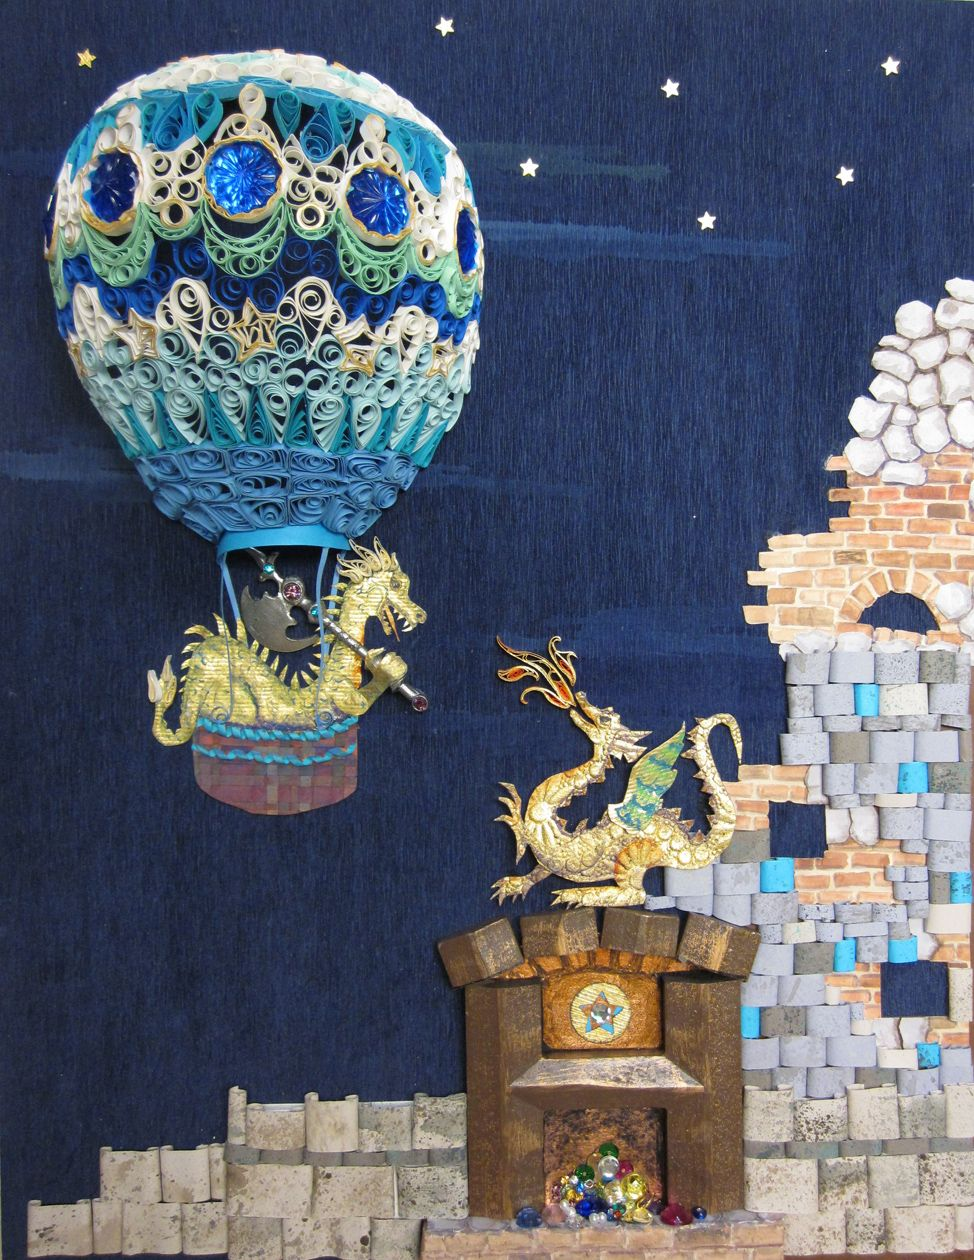 """Naomi Lipsky My work uses quilling, which is the craft of rolled paper, or paper filigree.  In this piece, the 3-d hot air balloon is 2 1/2"""" deep.  It is all paper, except for the blue """"jewels"""".  I am also a gilder, so some of the rolled paper is edged with 23k gold leaf. The castle wall stones are also rolled paper antiqued with gouache, and the bricks are painted with gouache.  The dragon in the balloon is image# 995593-039, and the castle dragon is #423107-014a."""